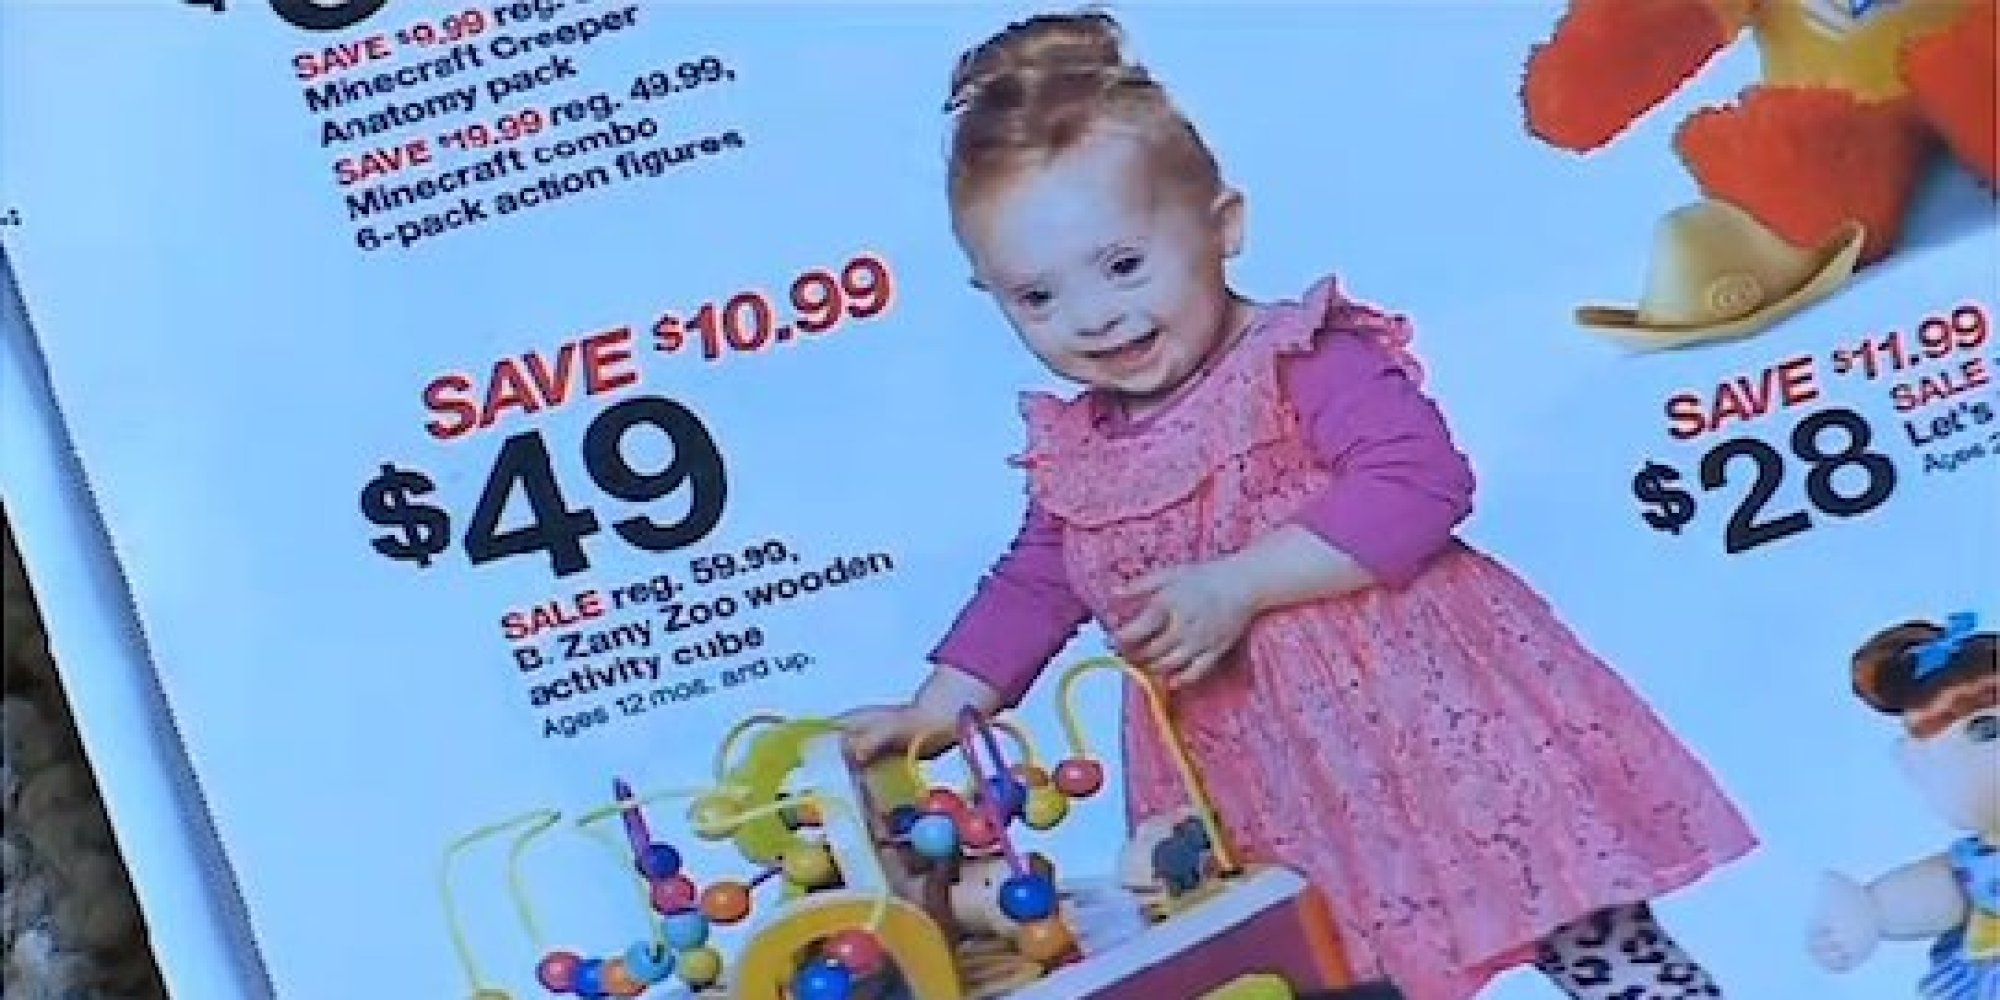 Toddler With Down Syndrome Stars In Tar Ad Helps Raise